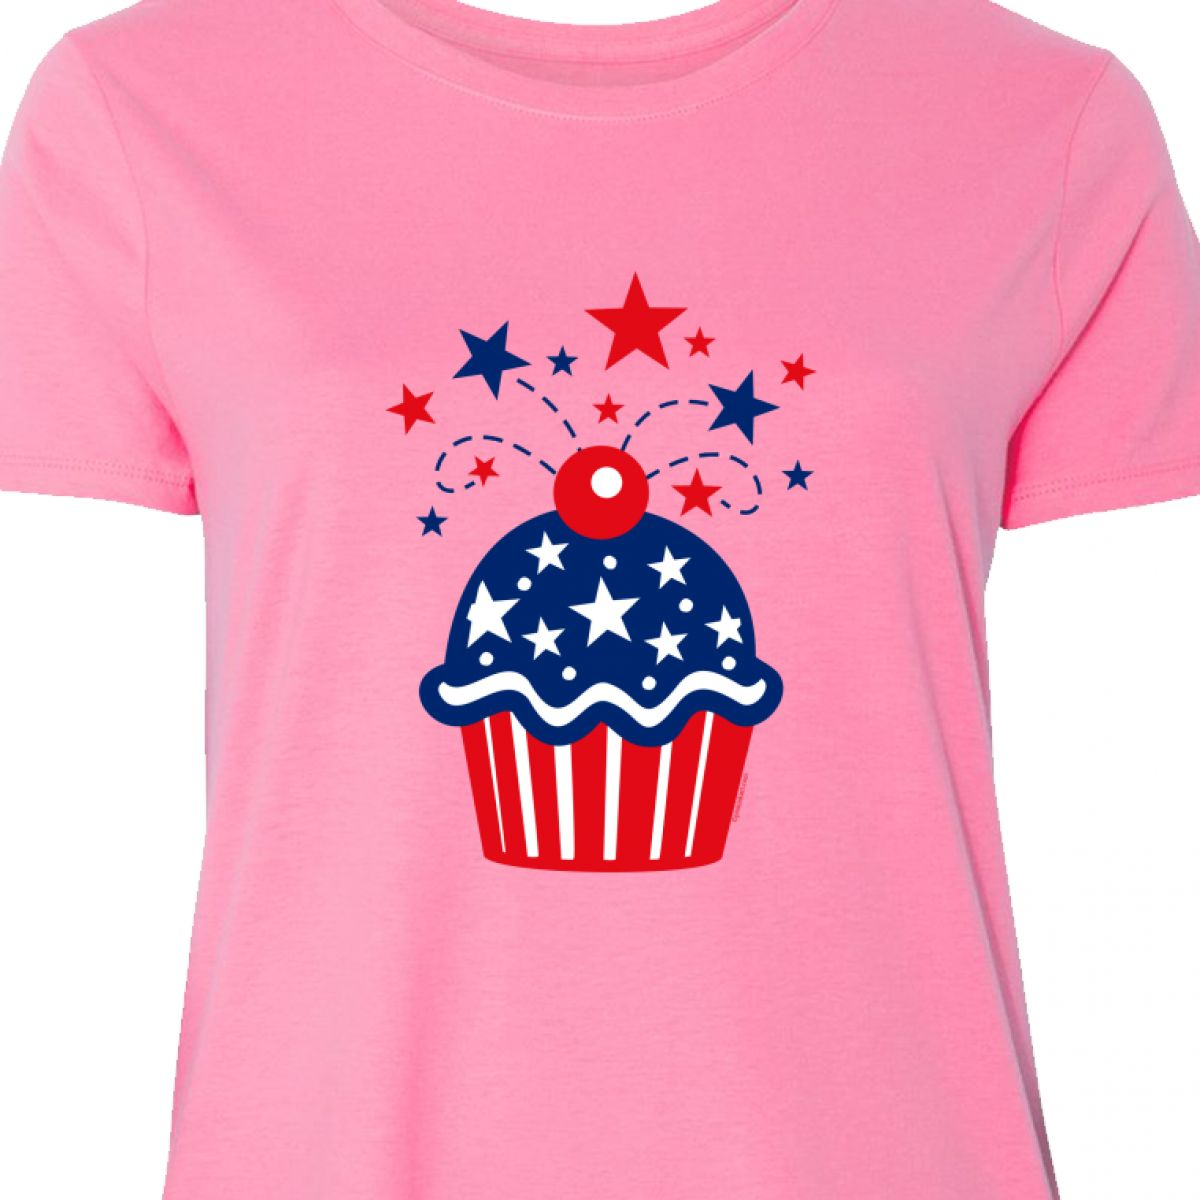 6dfbbfdd0ed Inktastic American Cupcake Women s Plus Size T-Shirt 4th Of July ...